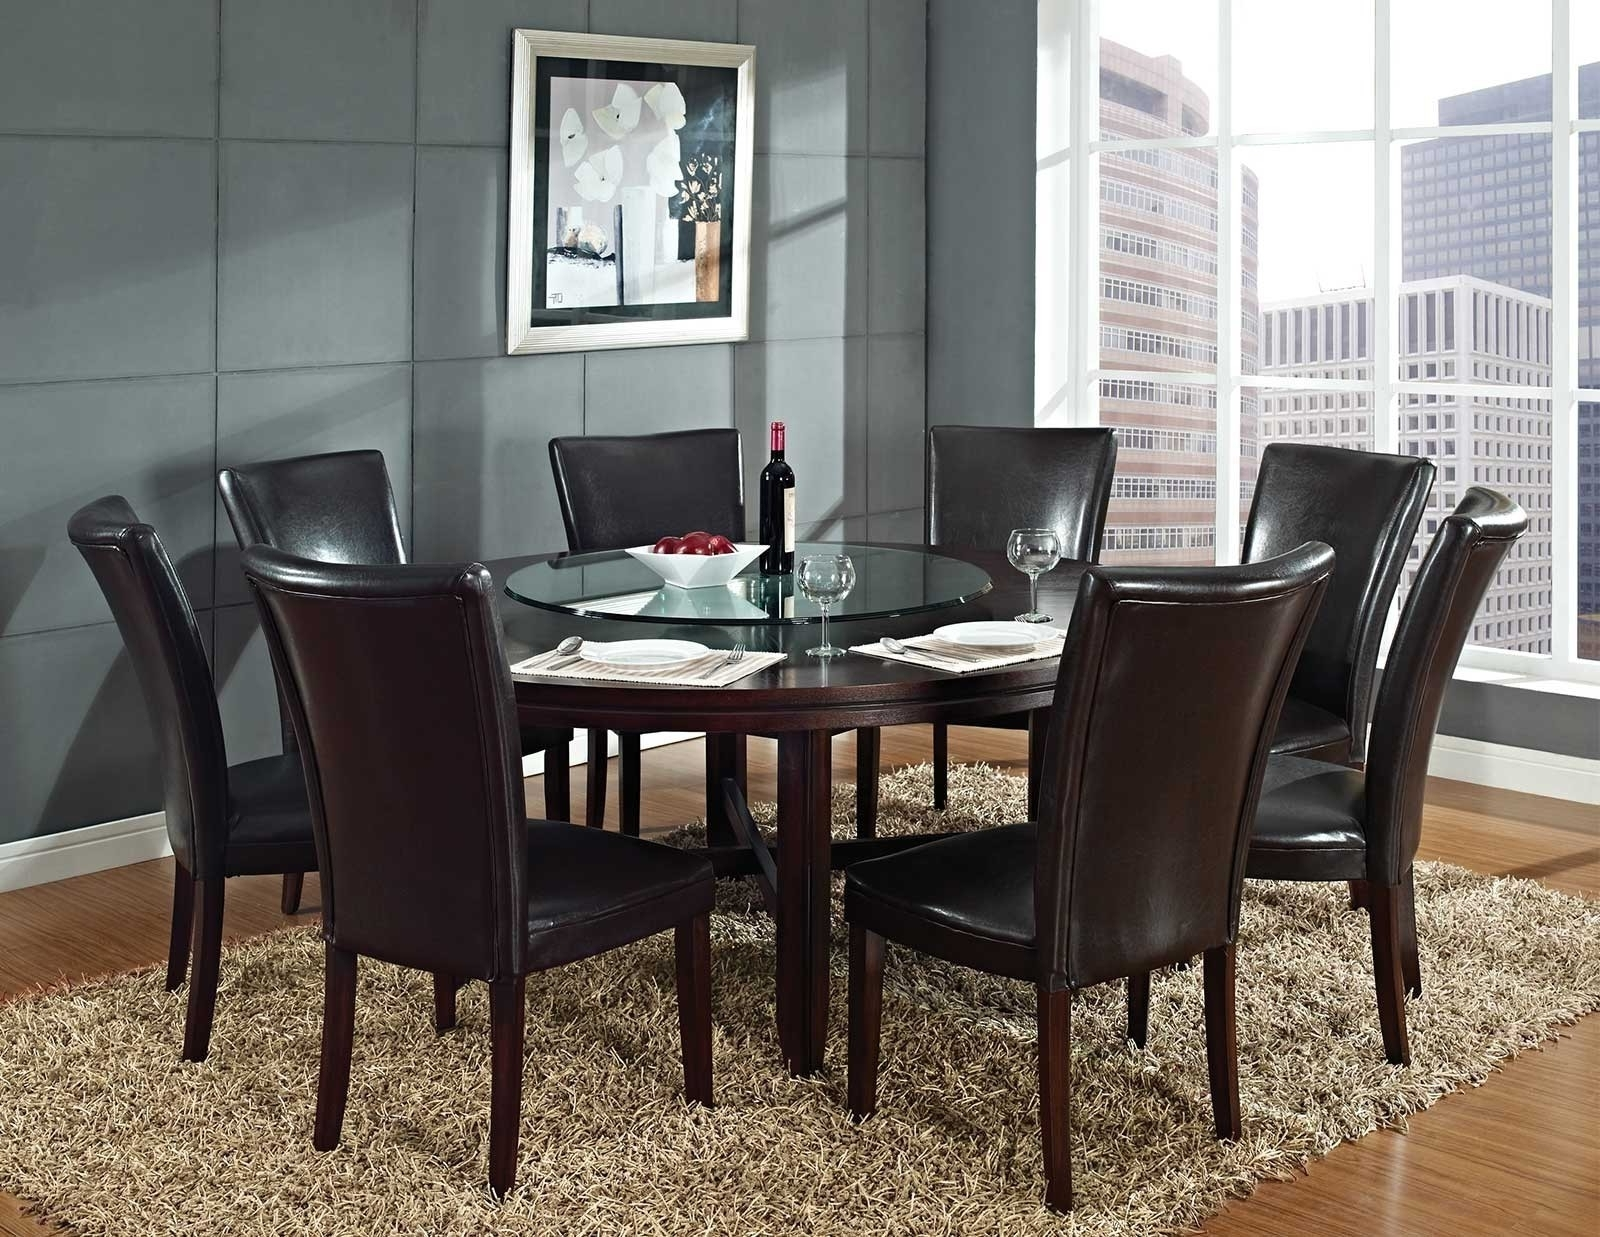 Most Recent Large Circular Dining Tables With Regard To Chairs Glass Glamorous Round For Set Circle Chair Dining Room And (View 18 of 25)